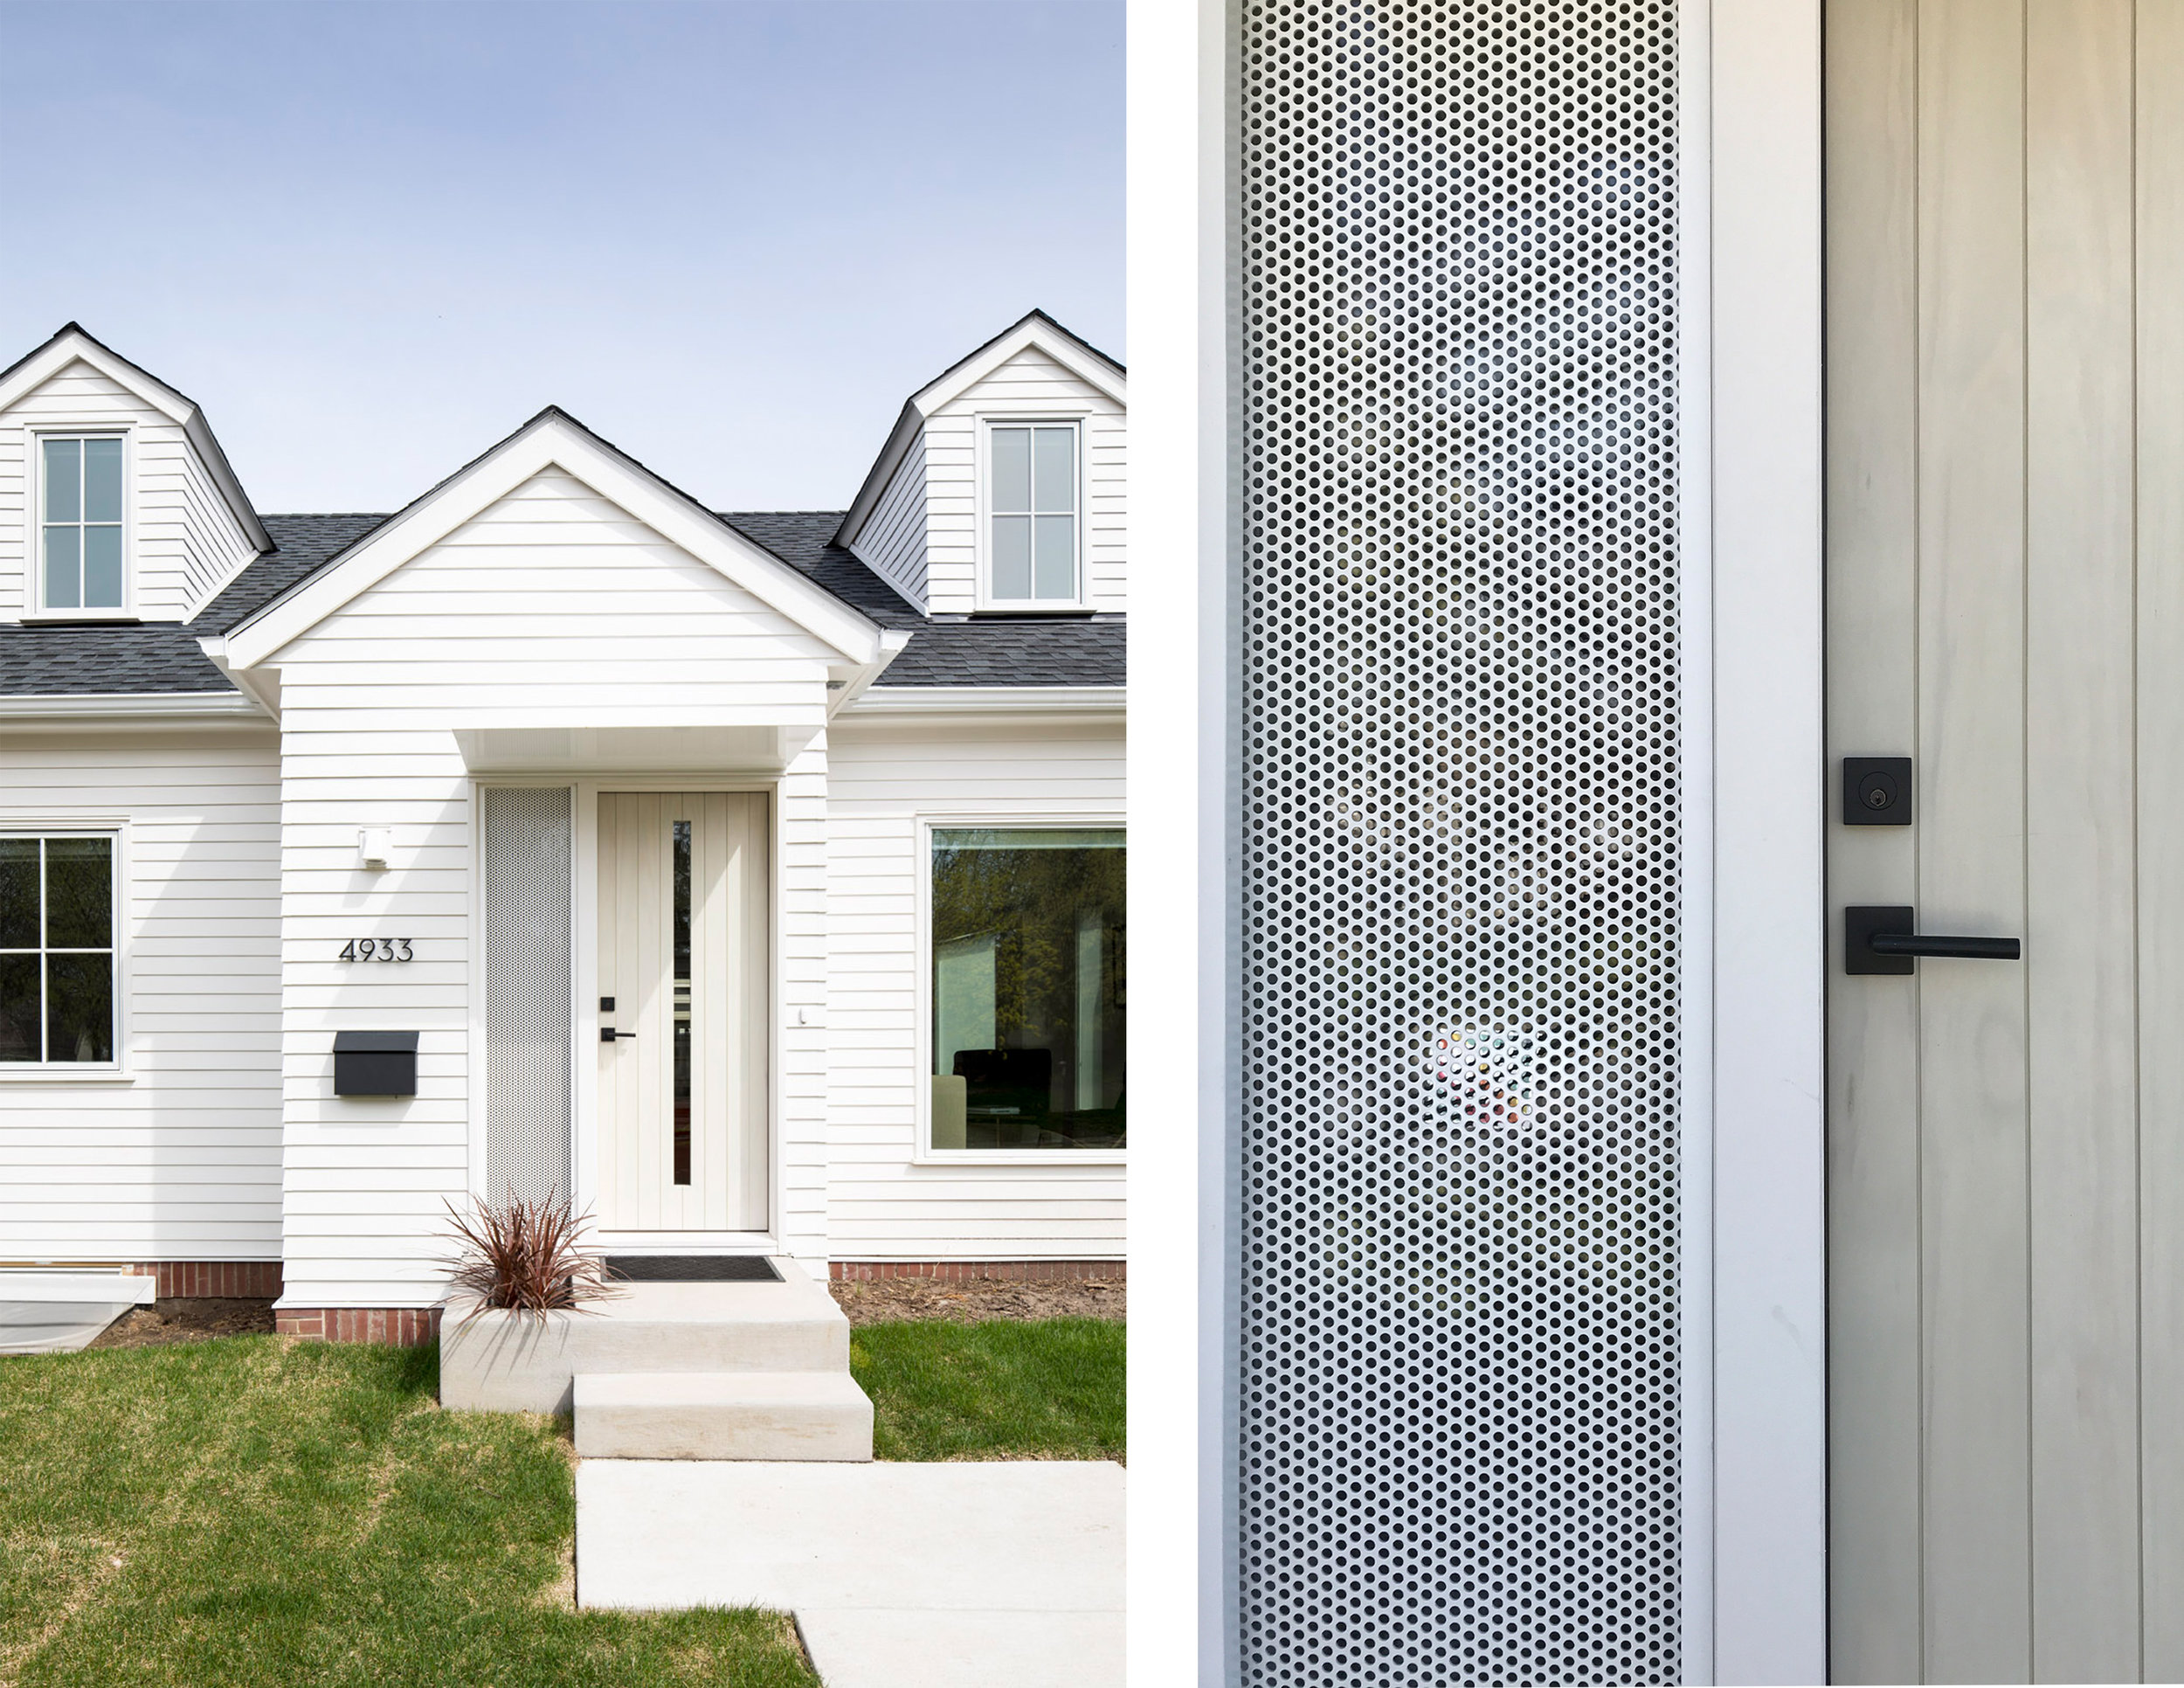 A modern white home with custom privacy screen detail at front door